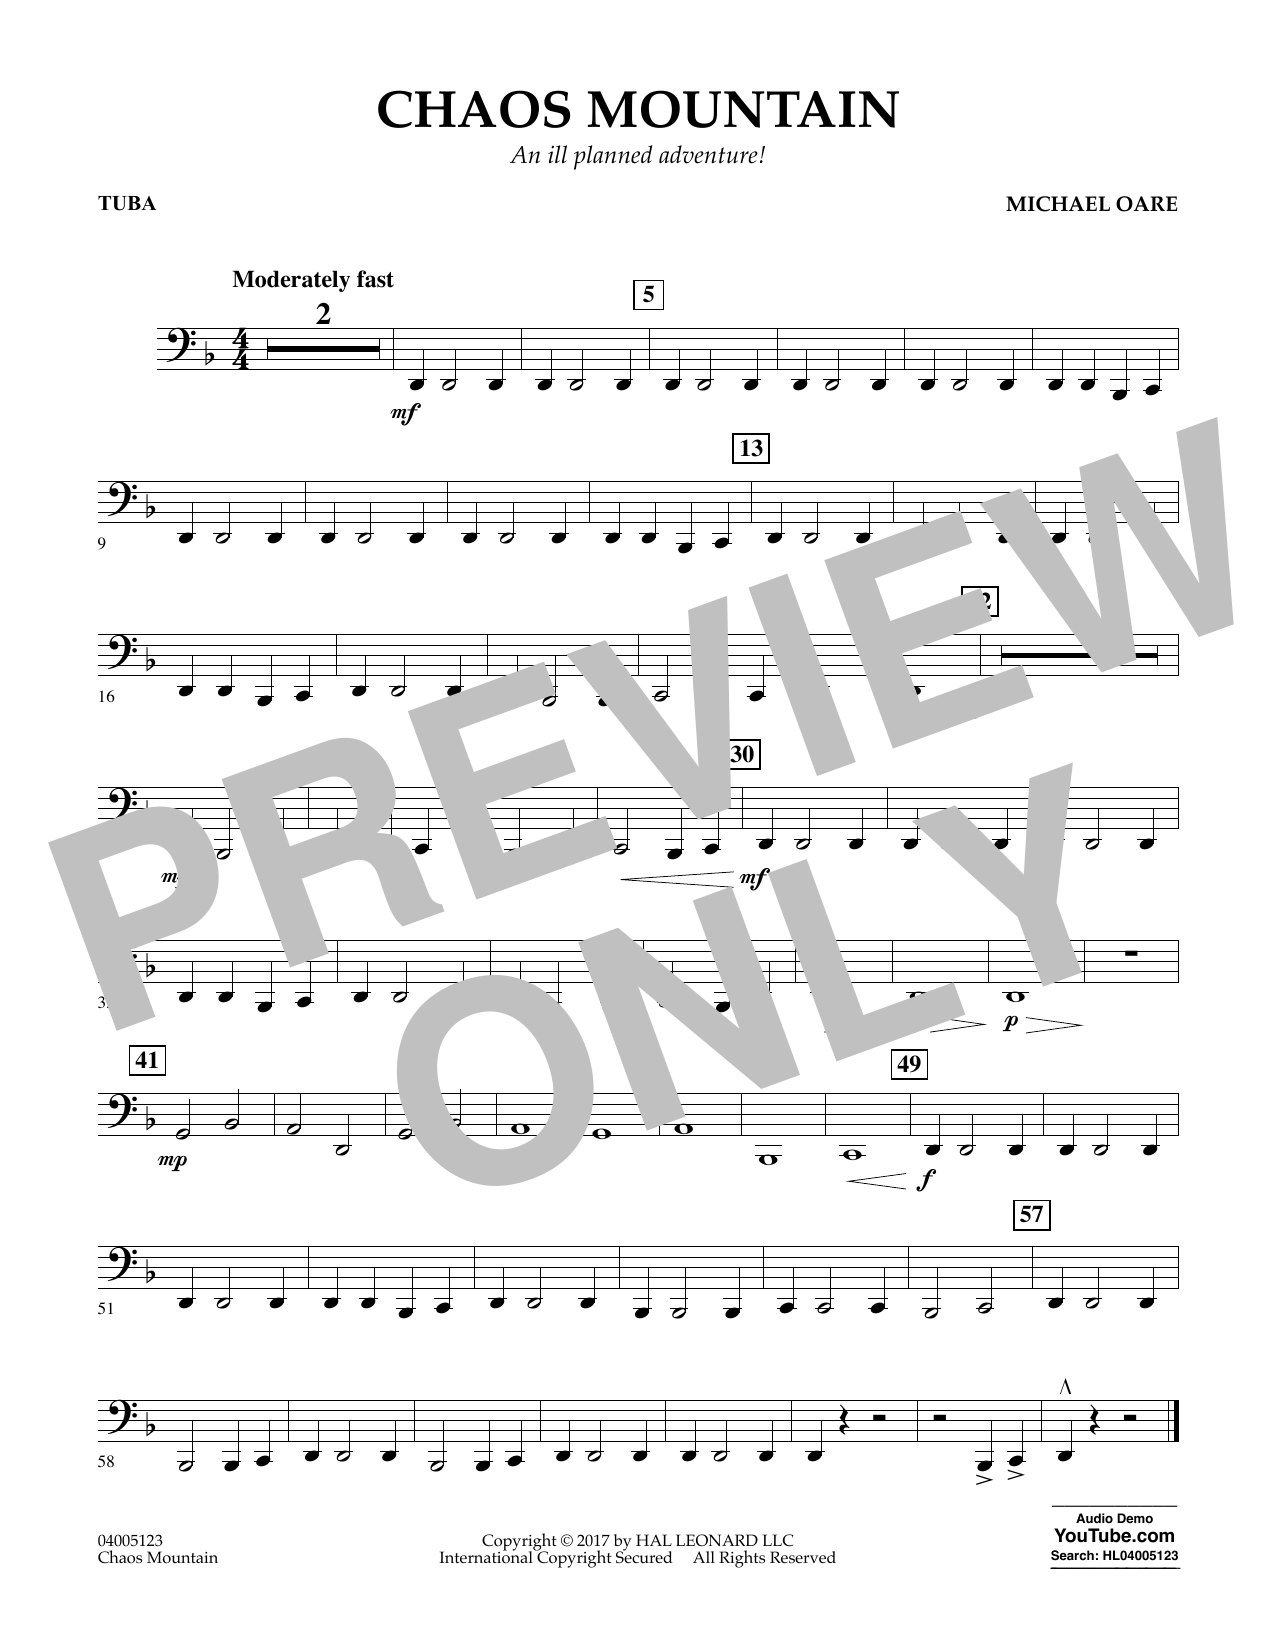 Michael Oare Chaos Mountain - Tuba sheet music notes and chords. Download Printable PDF.